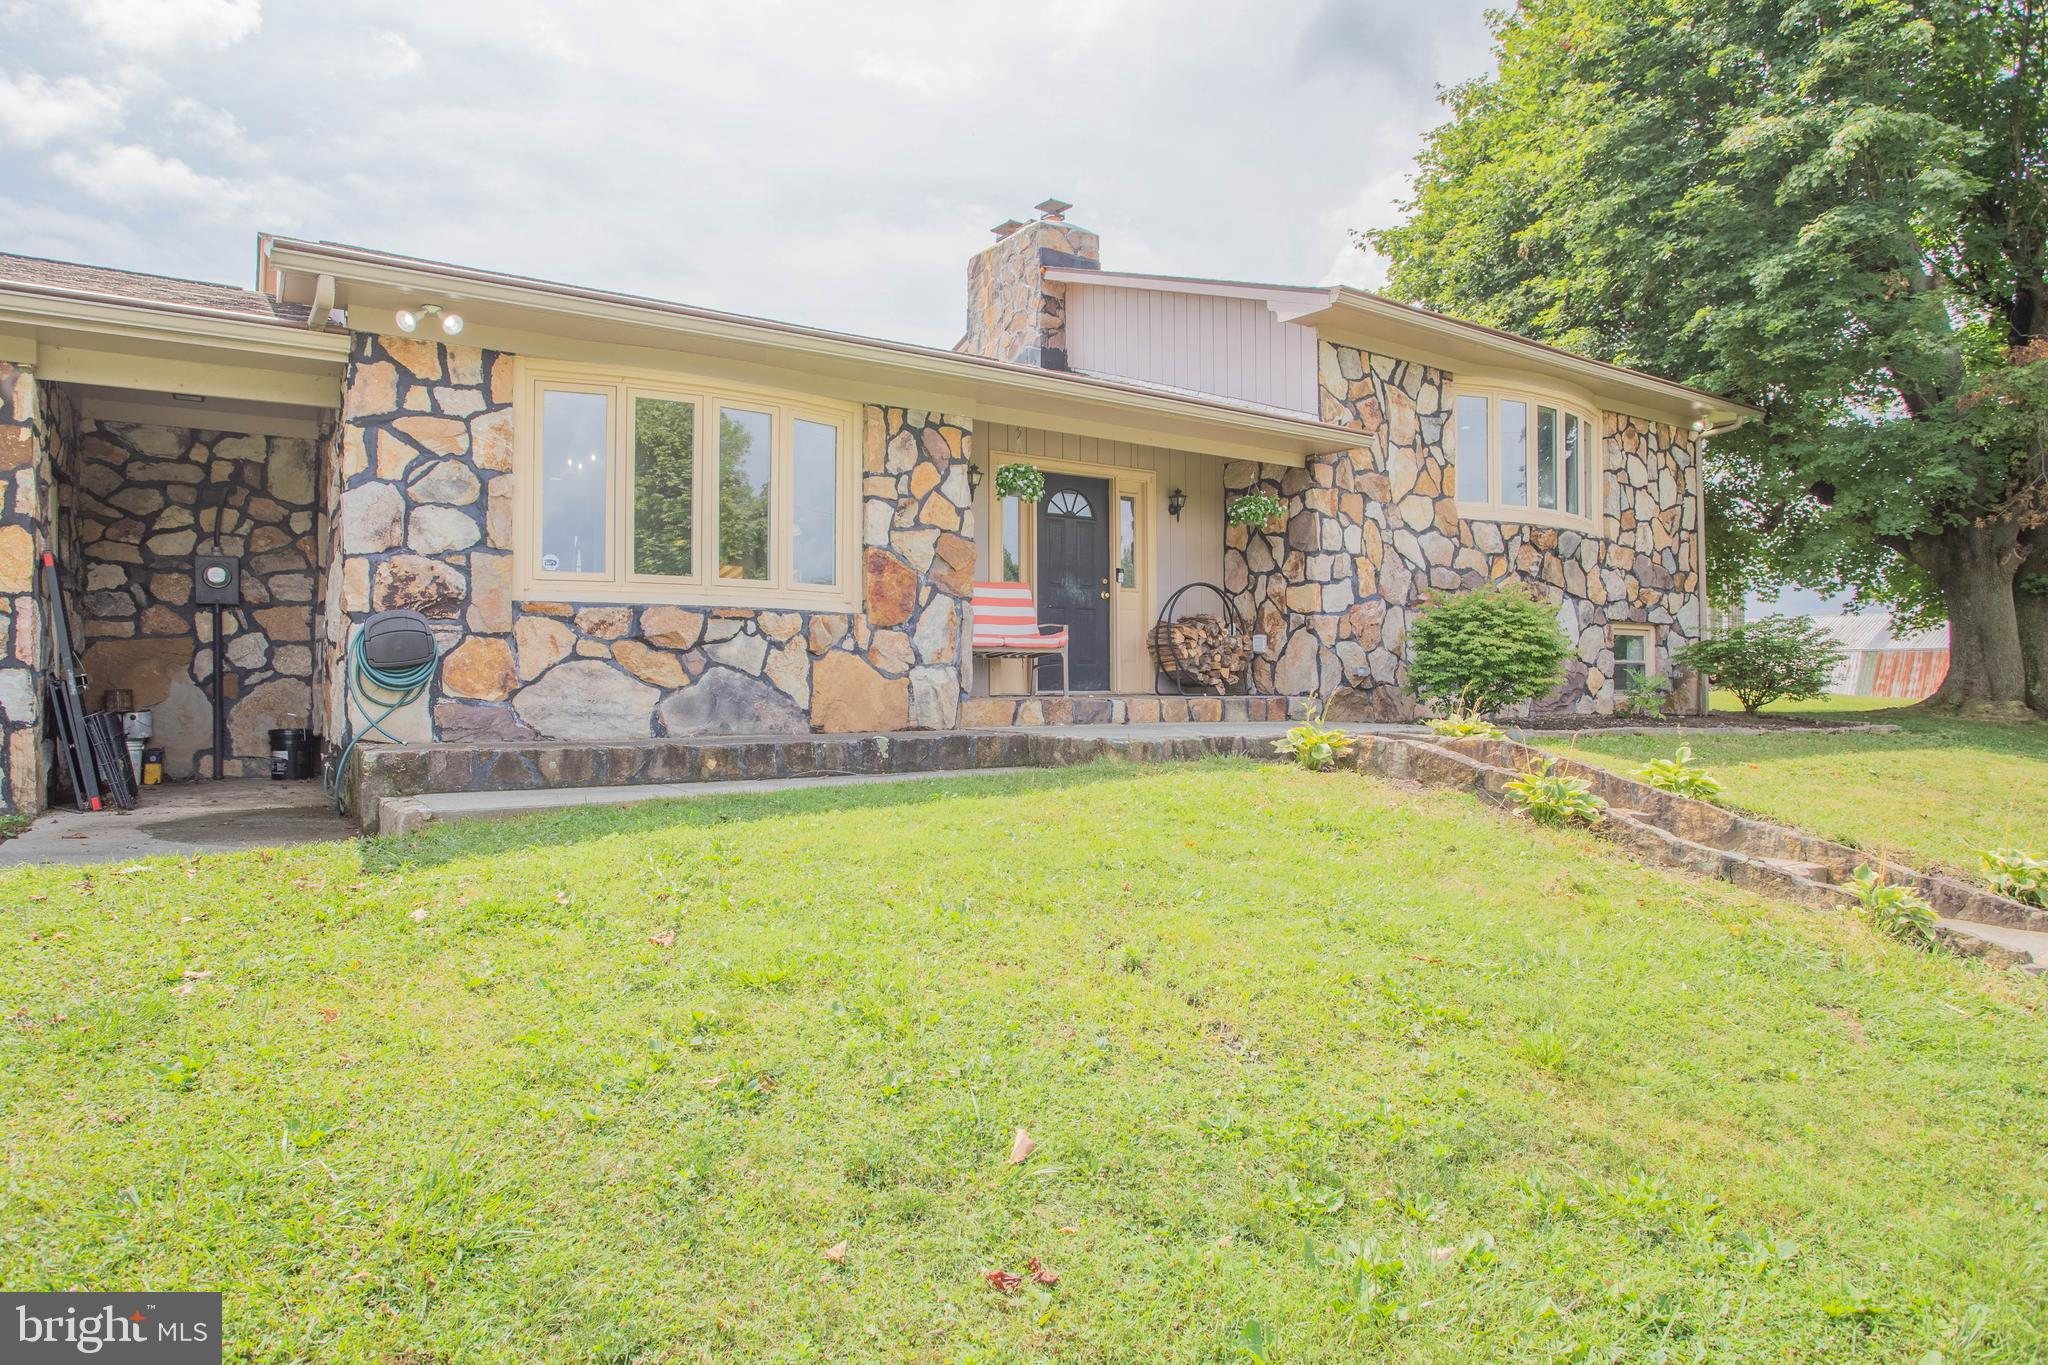 Back to  ACTIVE- (no fault of sellers) so ACT FAST for your chance at this 3BR/ 2BA country home nes